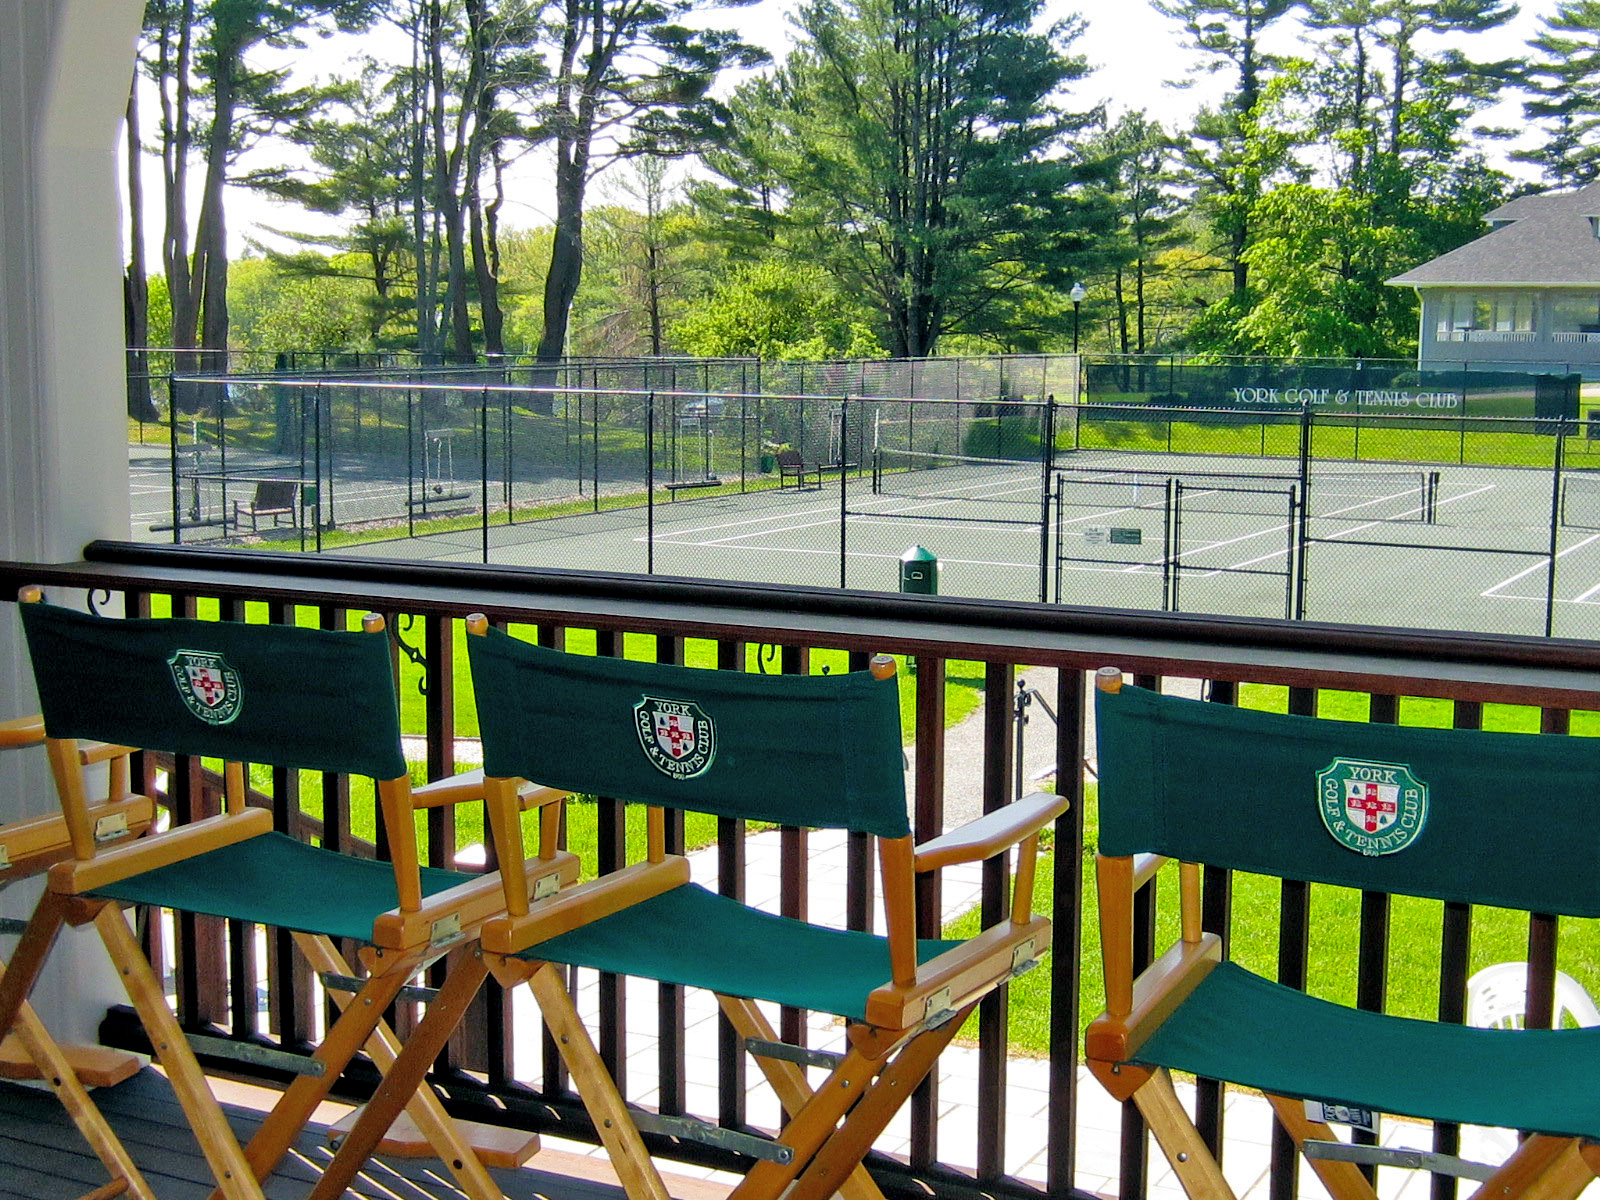 York Golf and Tennis Club, Tennis Club house, looking out from the covered porch